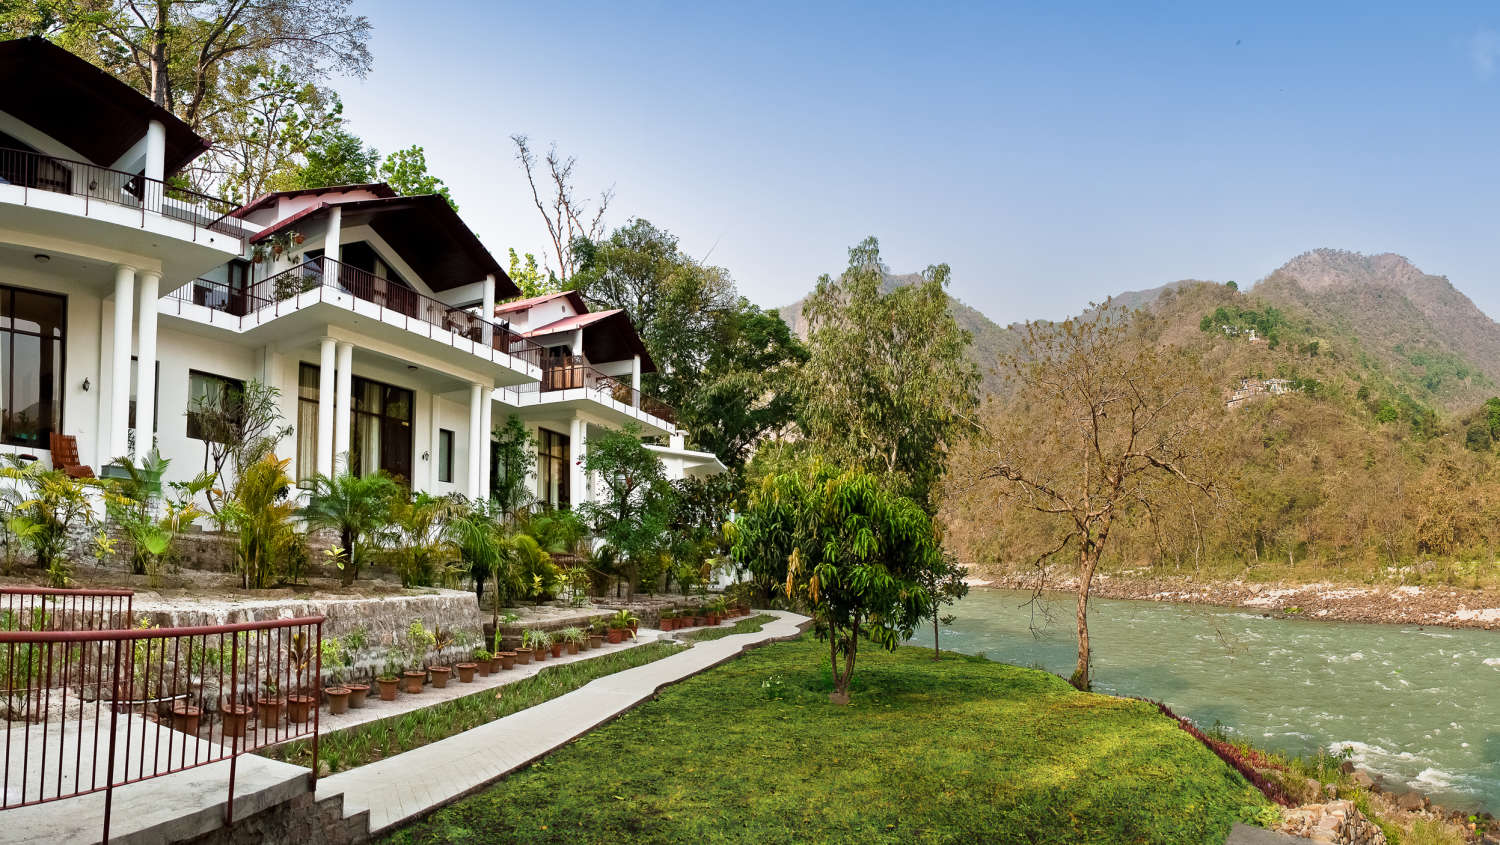 Aalia On The Ganges Hotel The Glasshouse On The Ganges Hotels Above Rishikesh